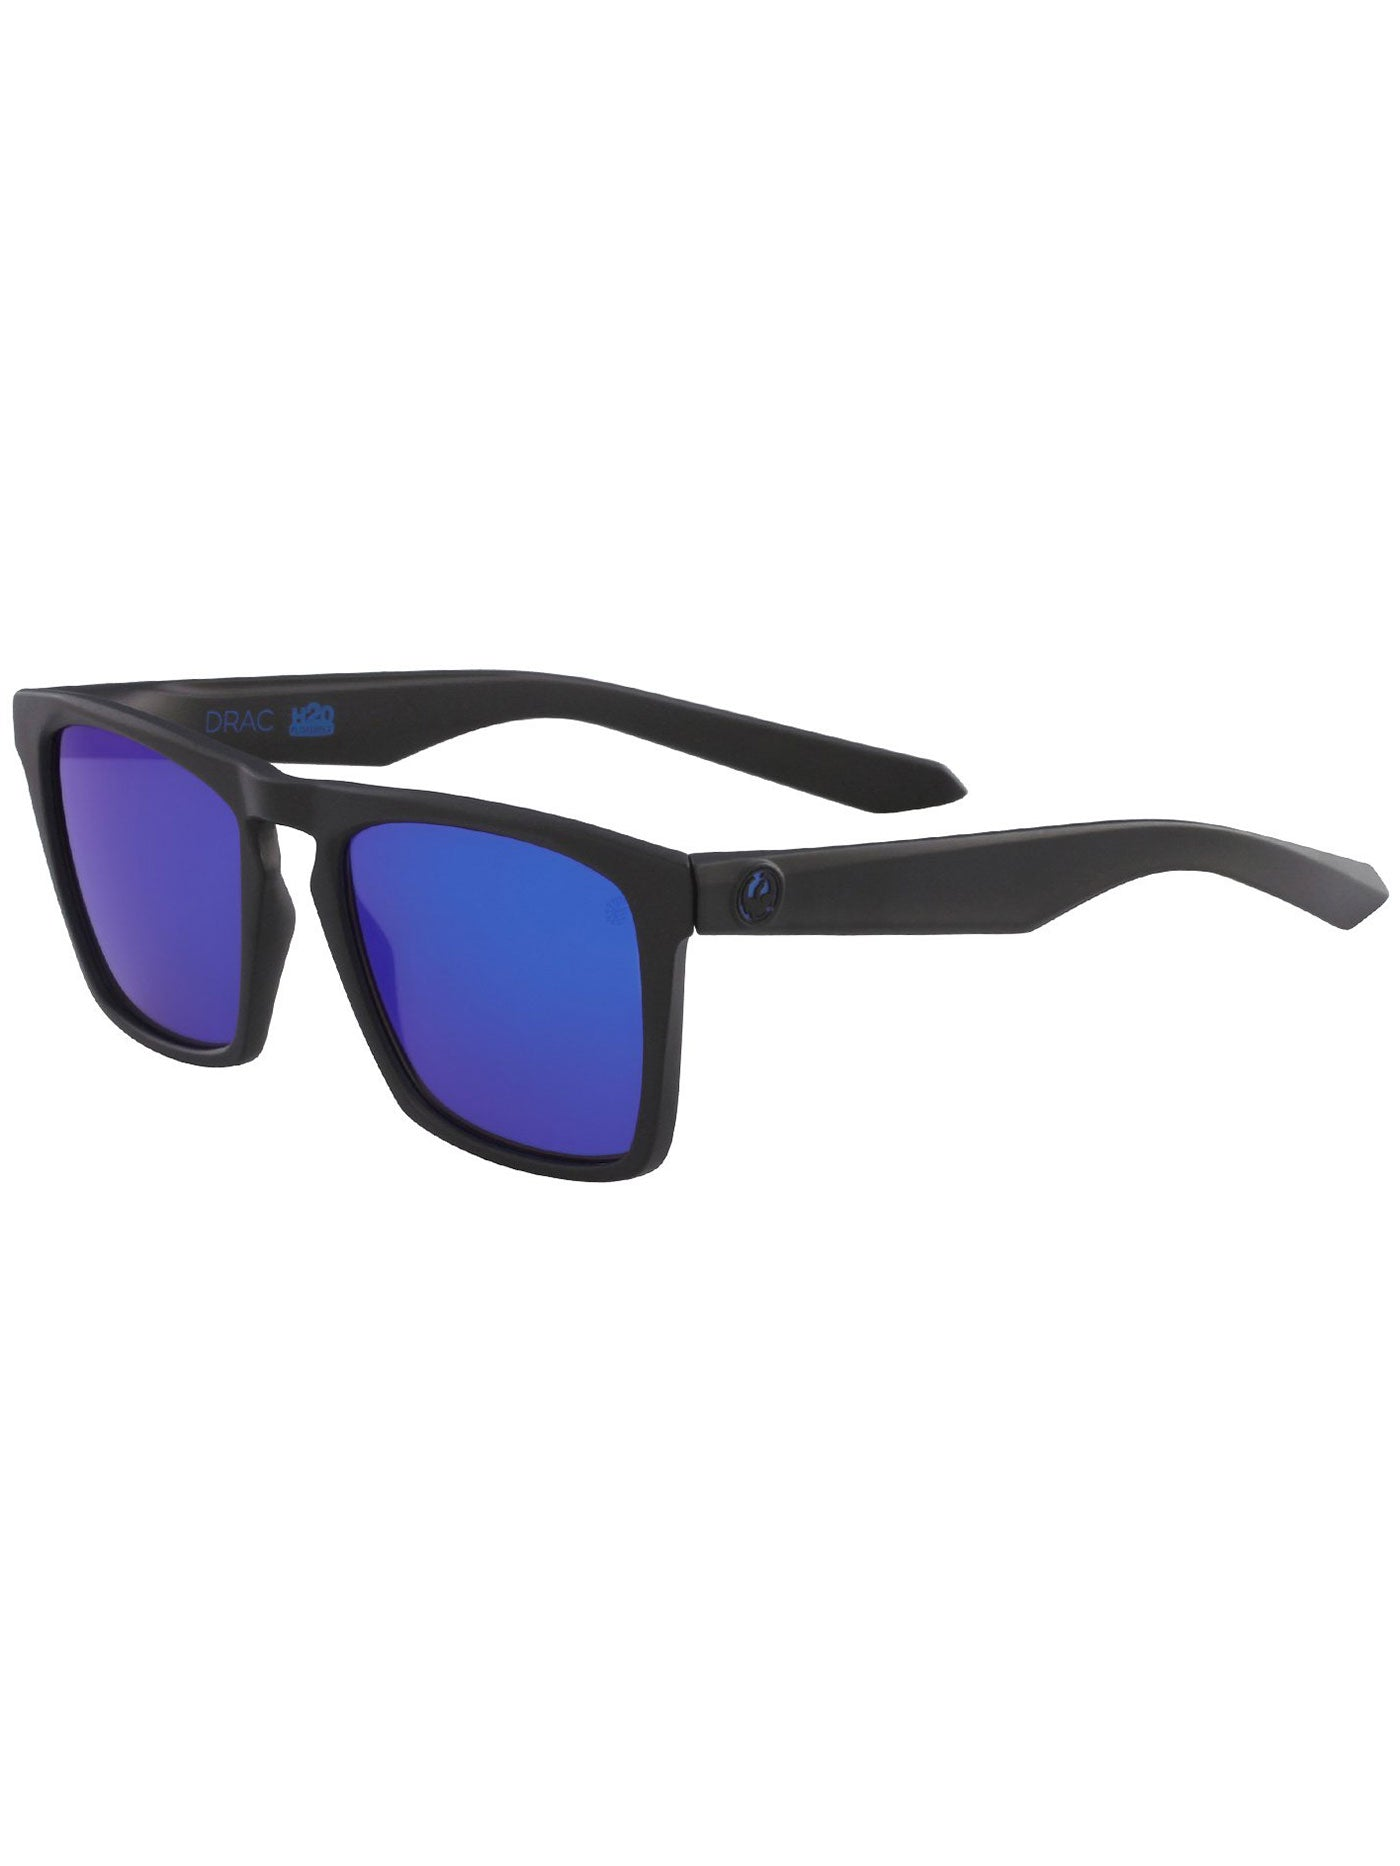 MATT BLK H2O BLUE ION POL